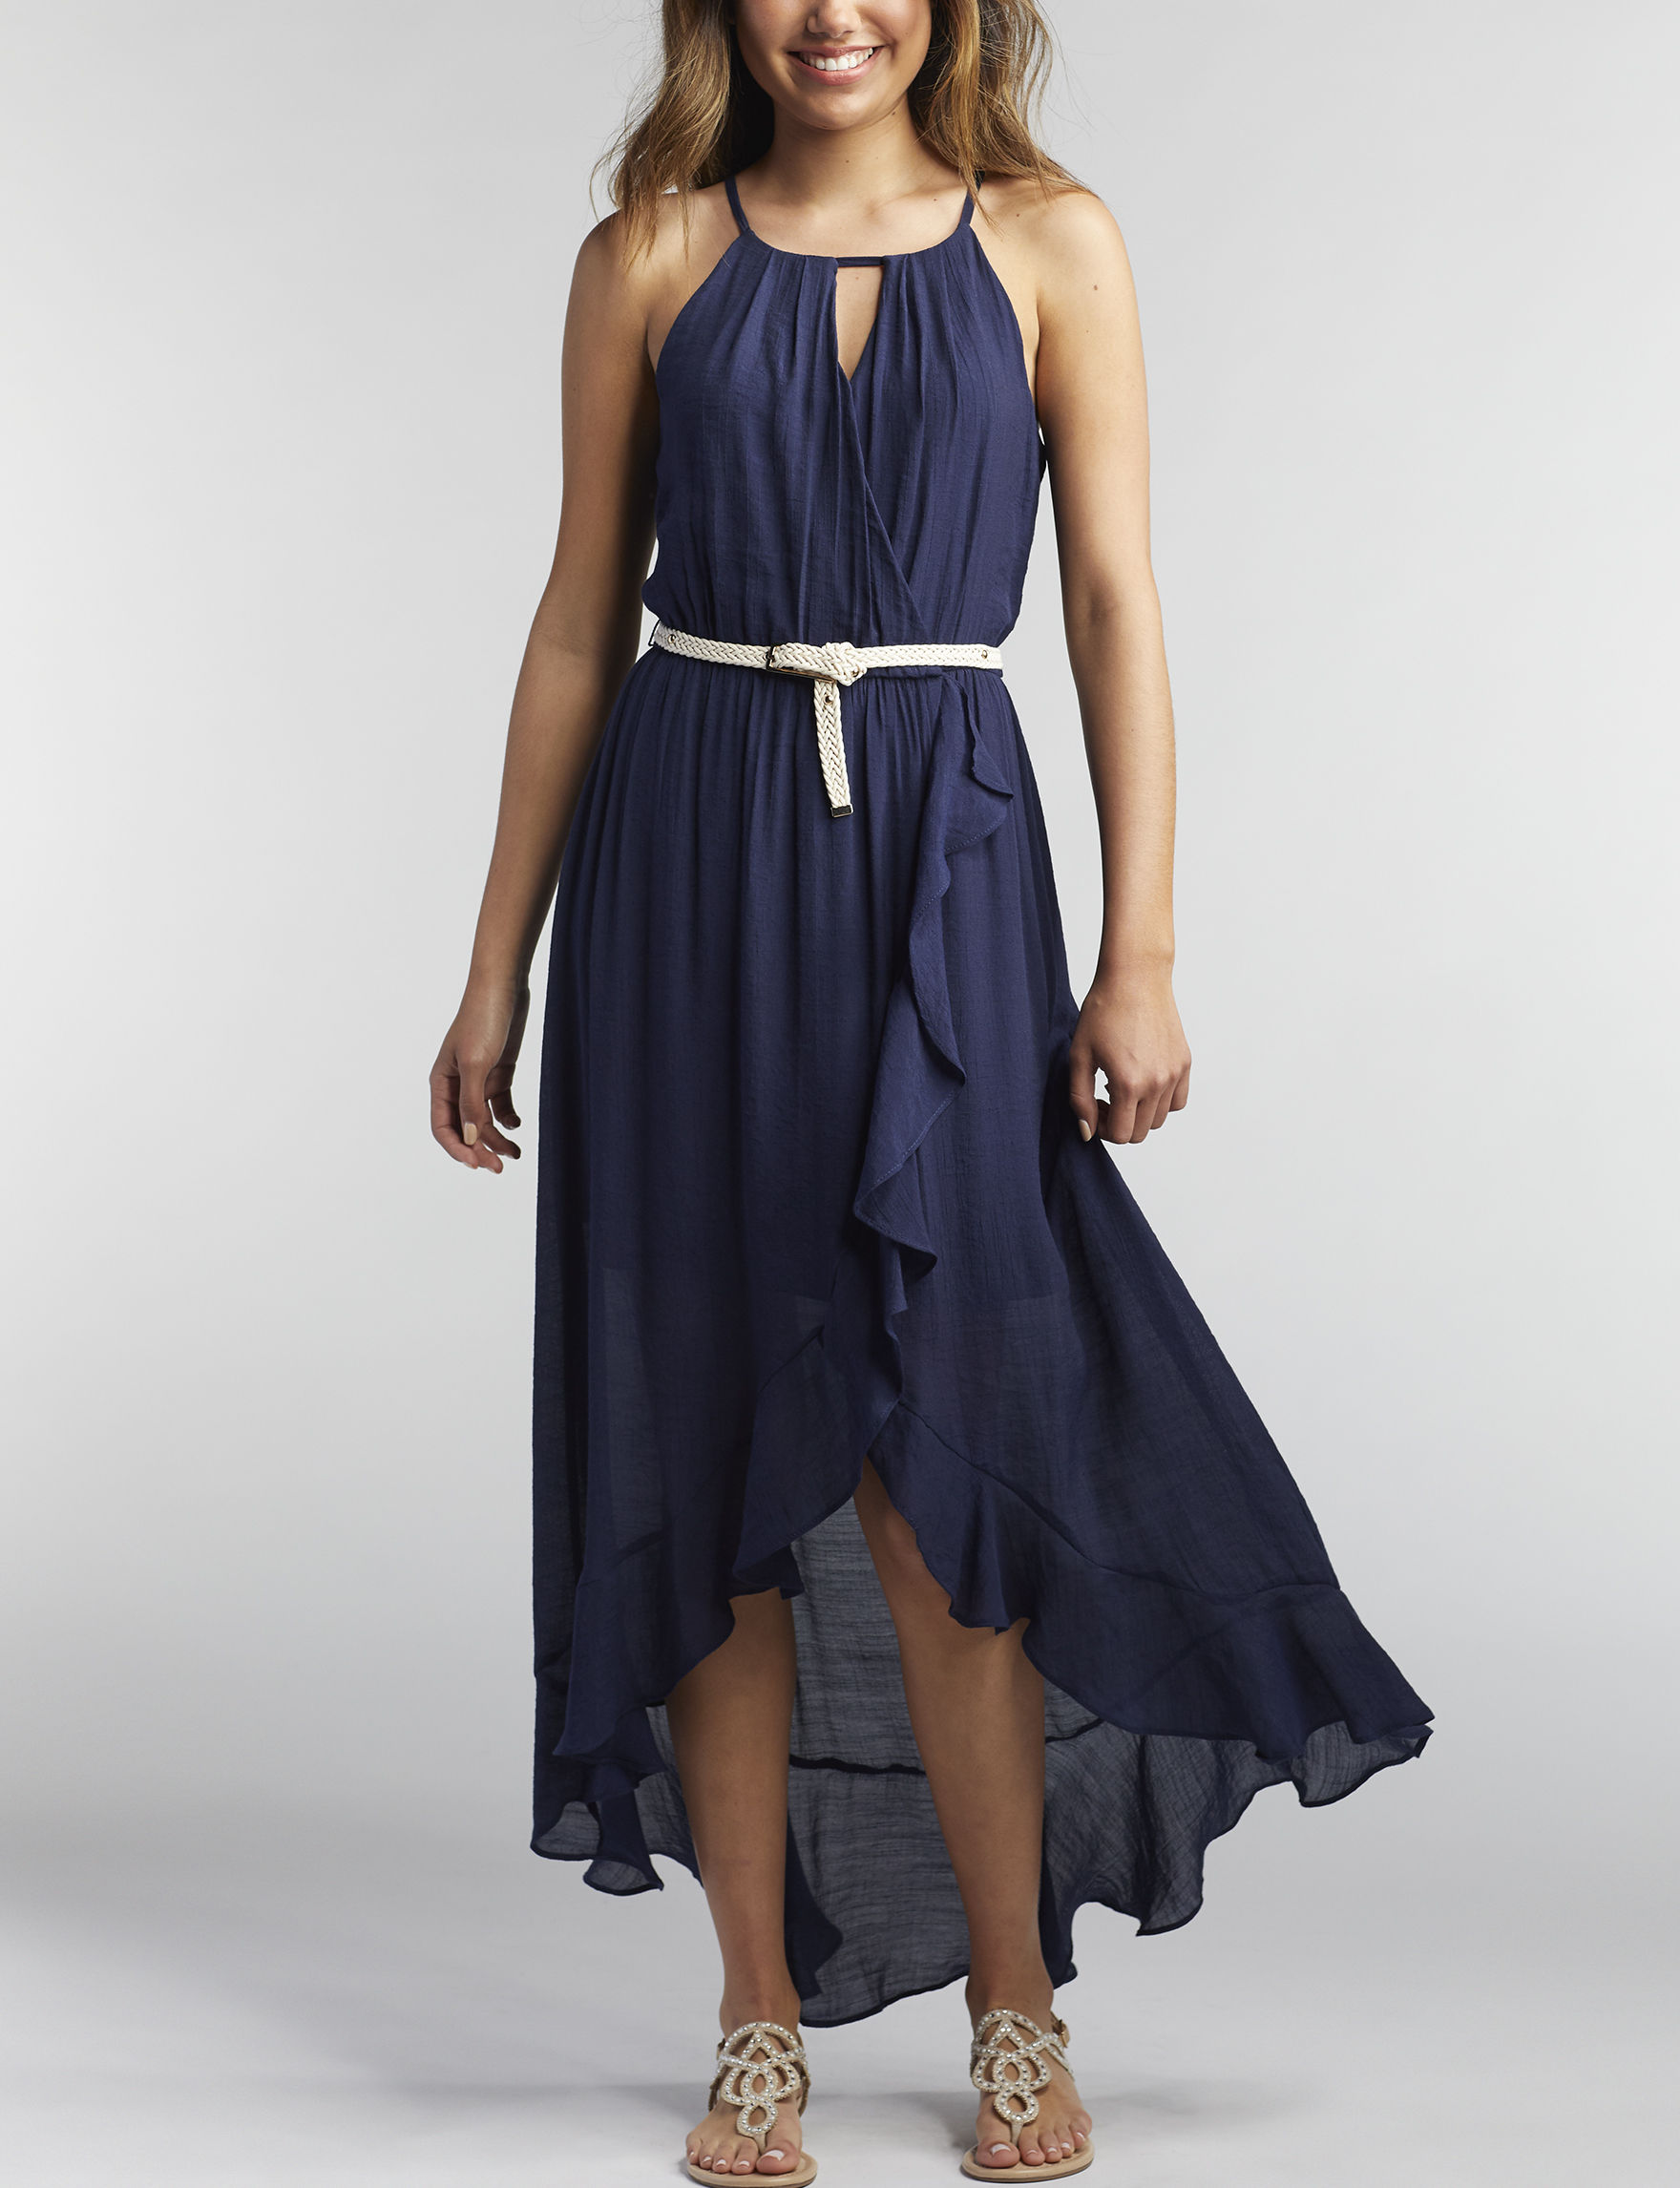 A. Byer Navy Everyday & Casual Sundresses